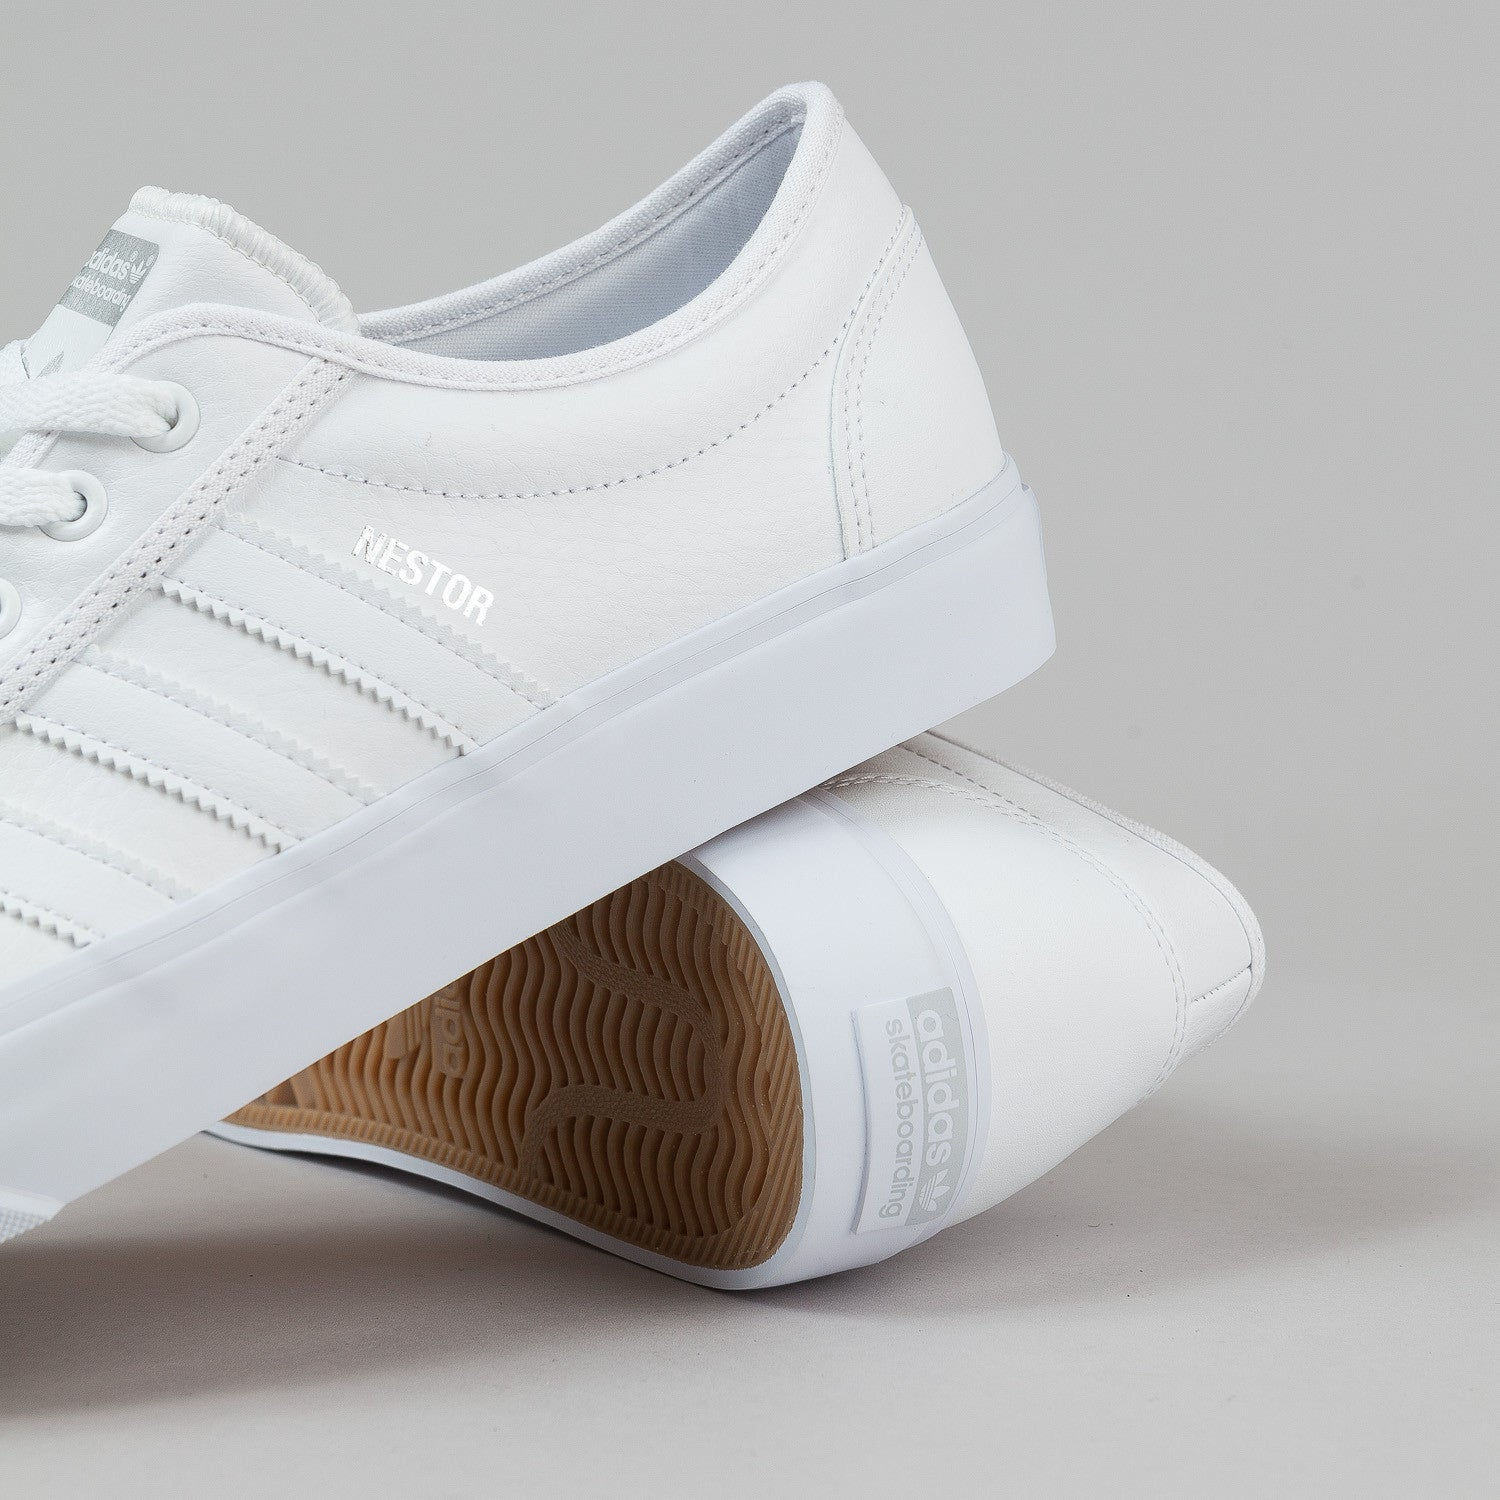 Adidas Adi Ease 'Nestor' Shoes - Running White / Clear Grey